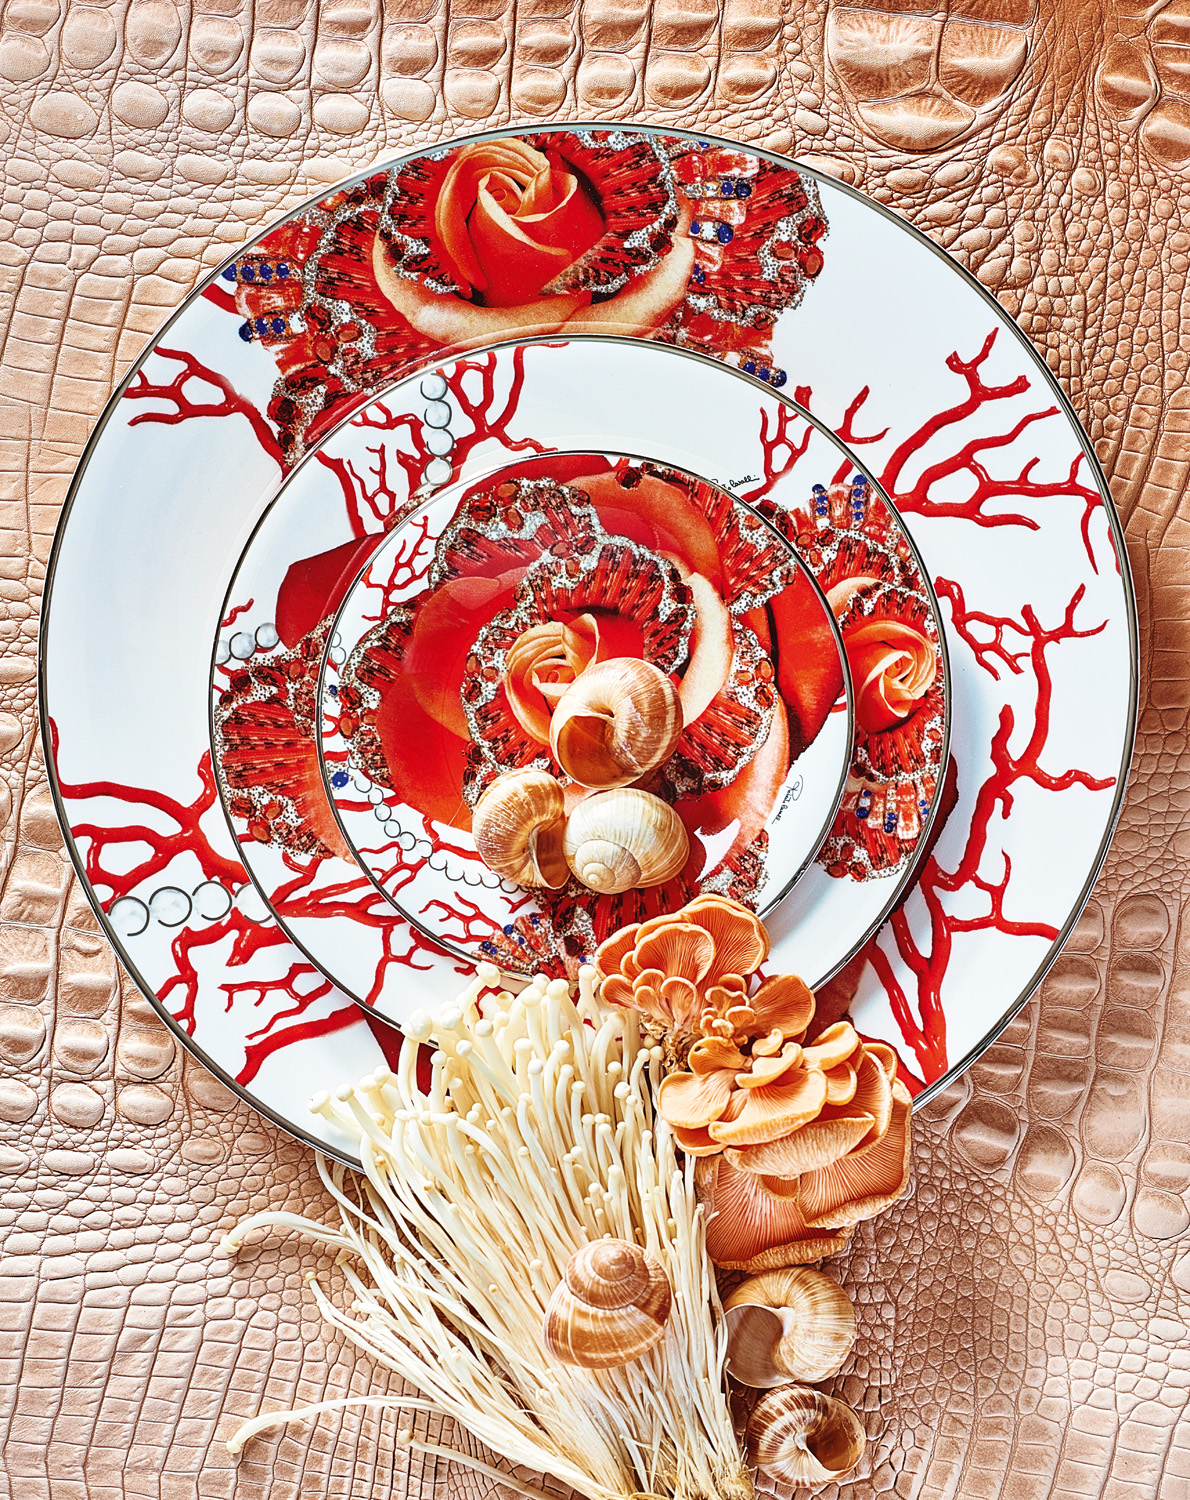 Roberto Cavalli Home rose jewel charger, dessert and bread plates